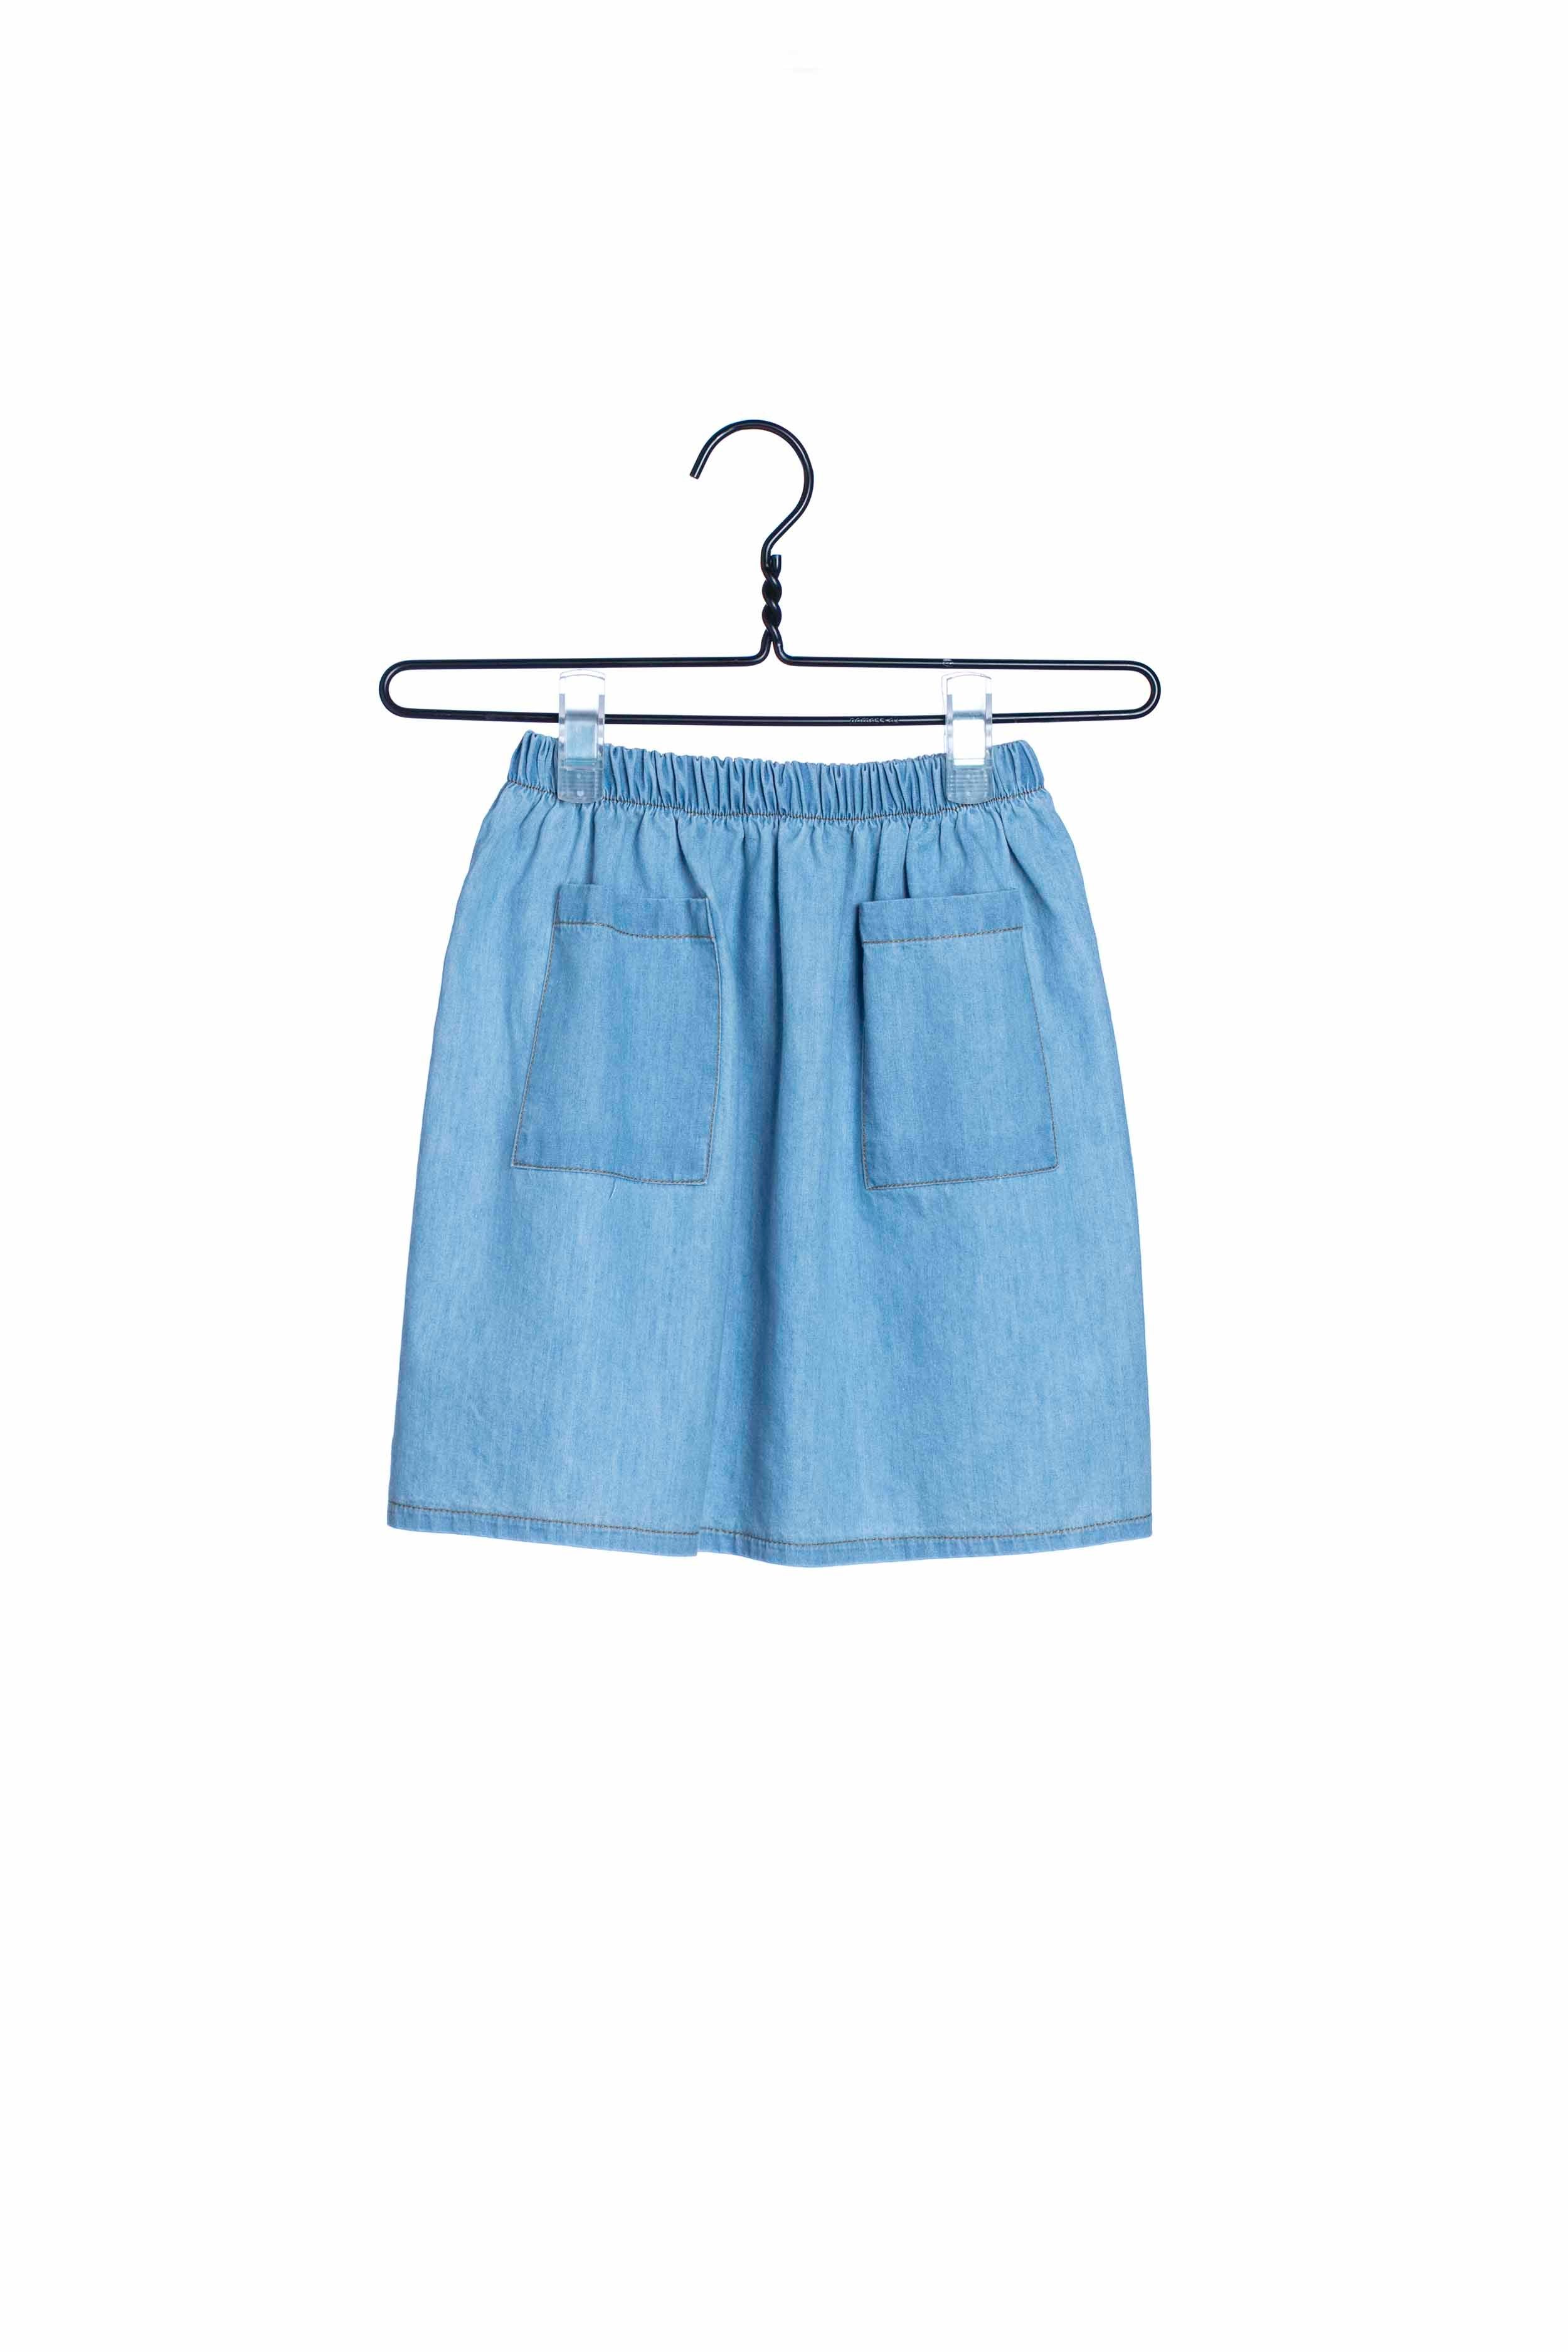 1720 Denim Pocket Skirt